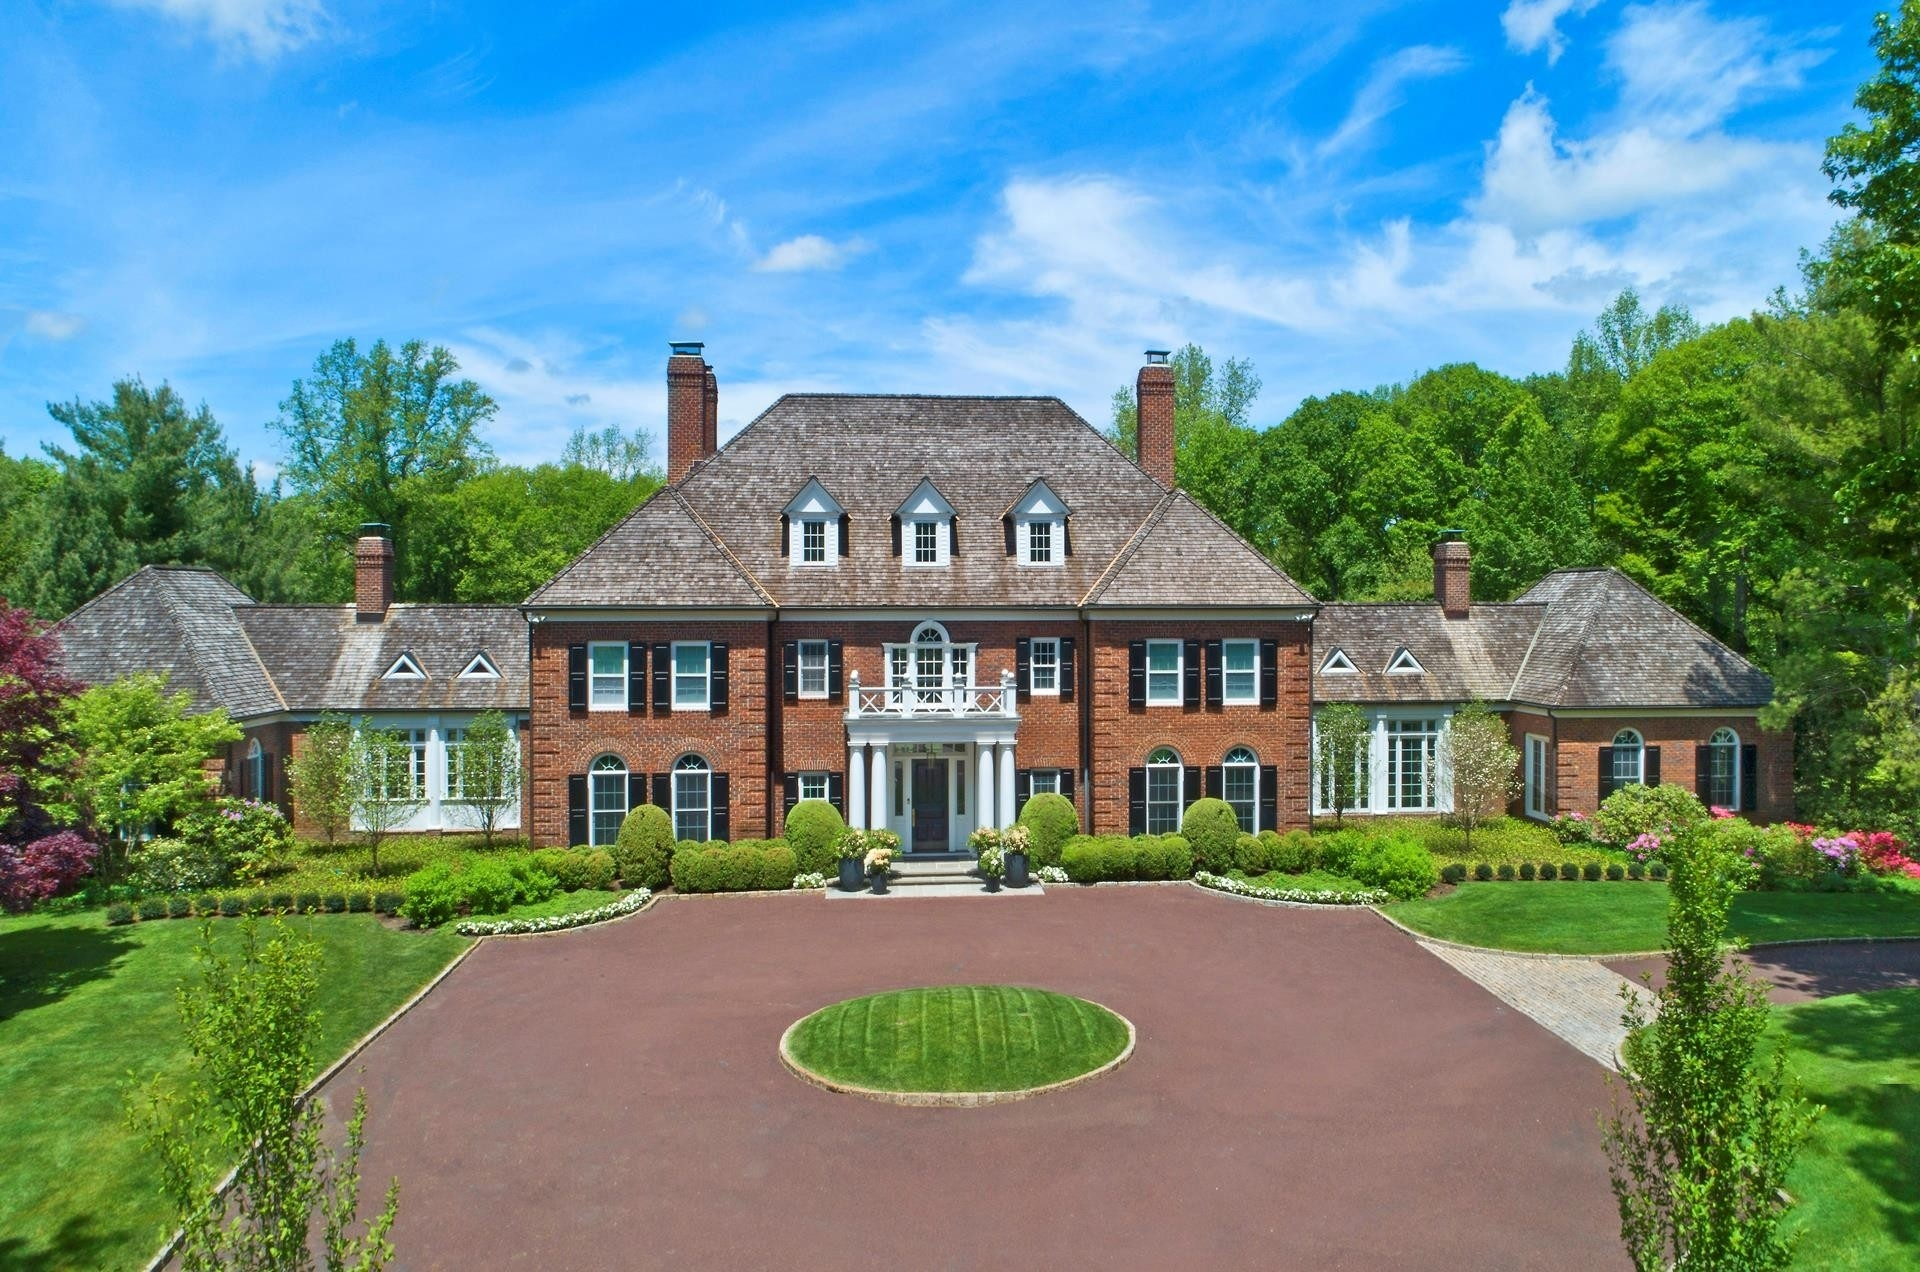 Property at Greenwich, CT 06831